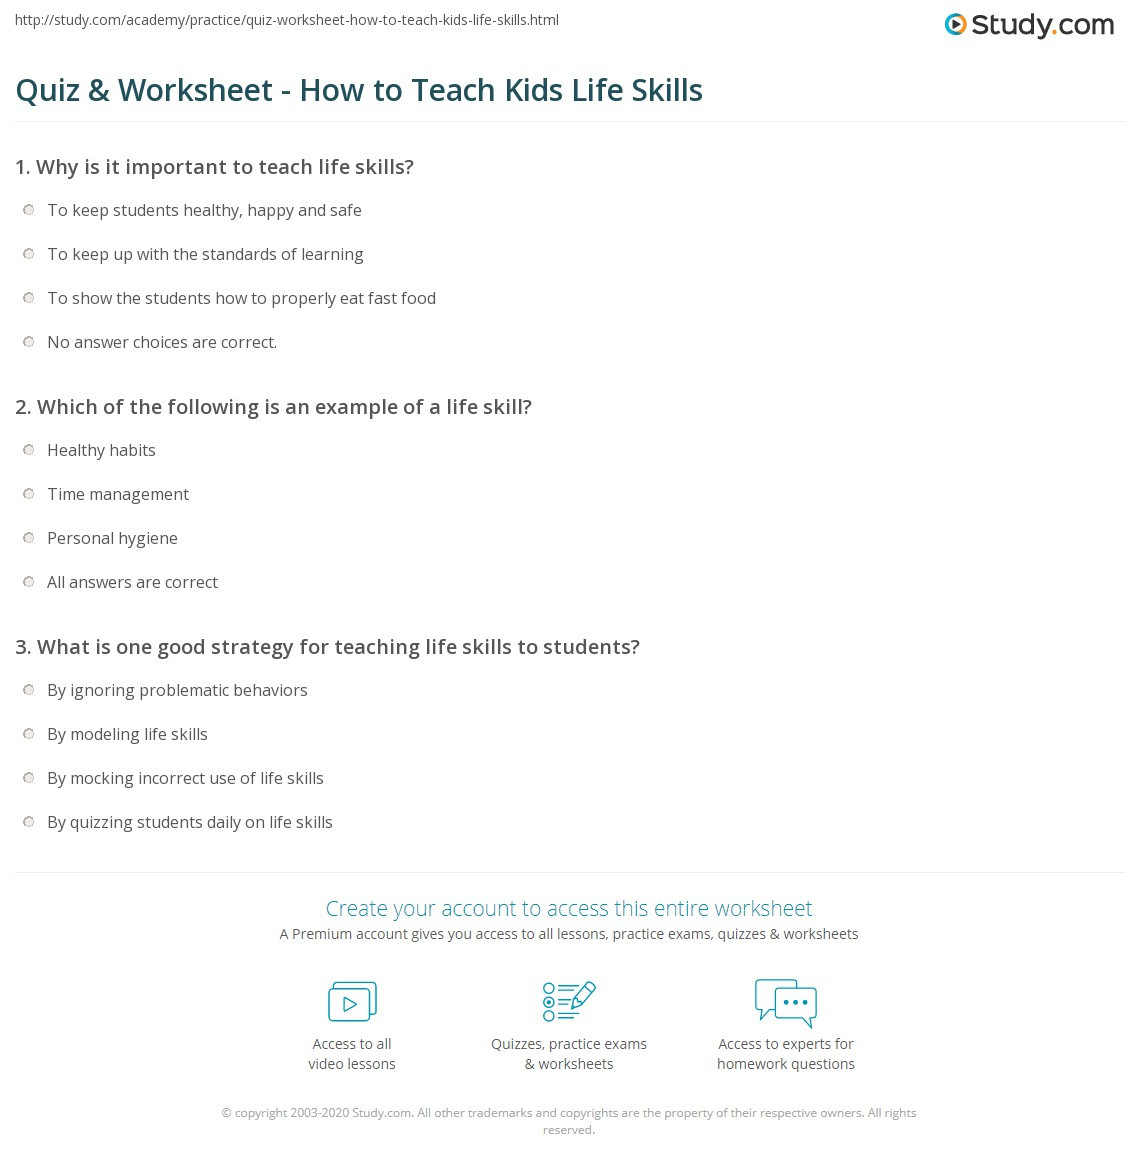 Free Life Skills Worksheets Quiz & Worksheet How to Teach Kids Life Skills